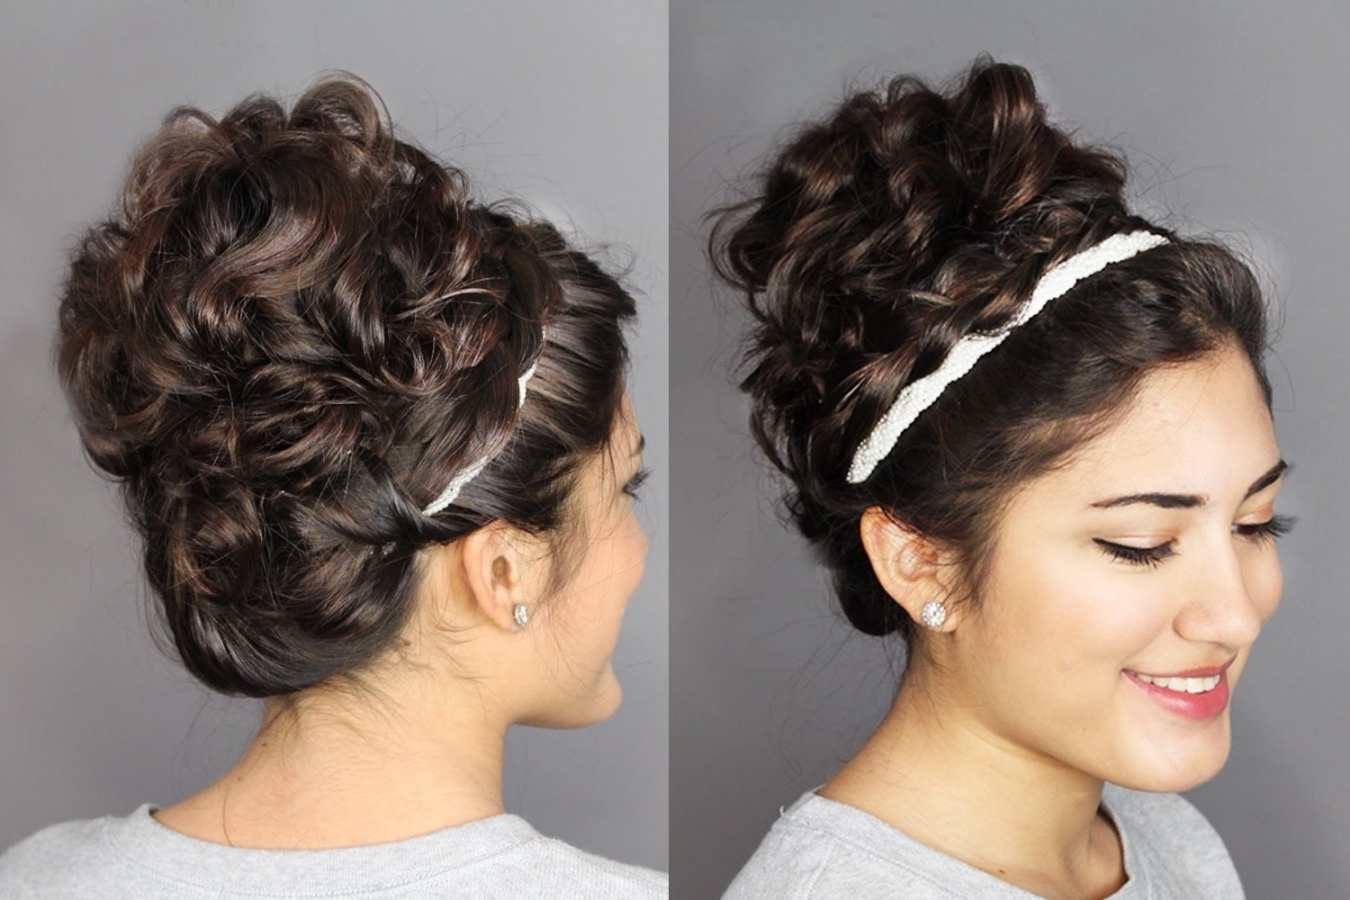 Second Day Hair Holiday Updo: Braided Headband & Messy, Curly Bun Regarding Curly Bun Updo Hairstyles (Gallery 2 of 15)